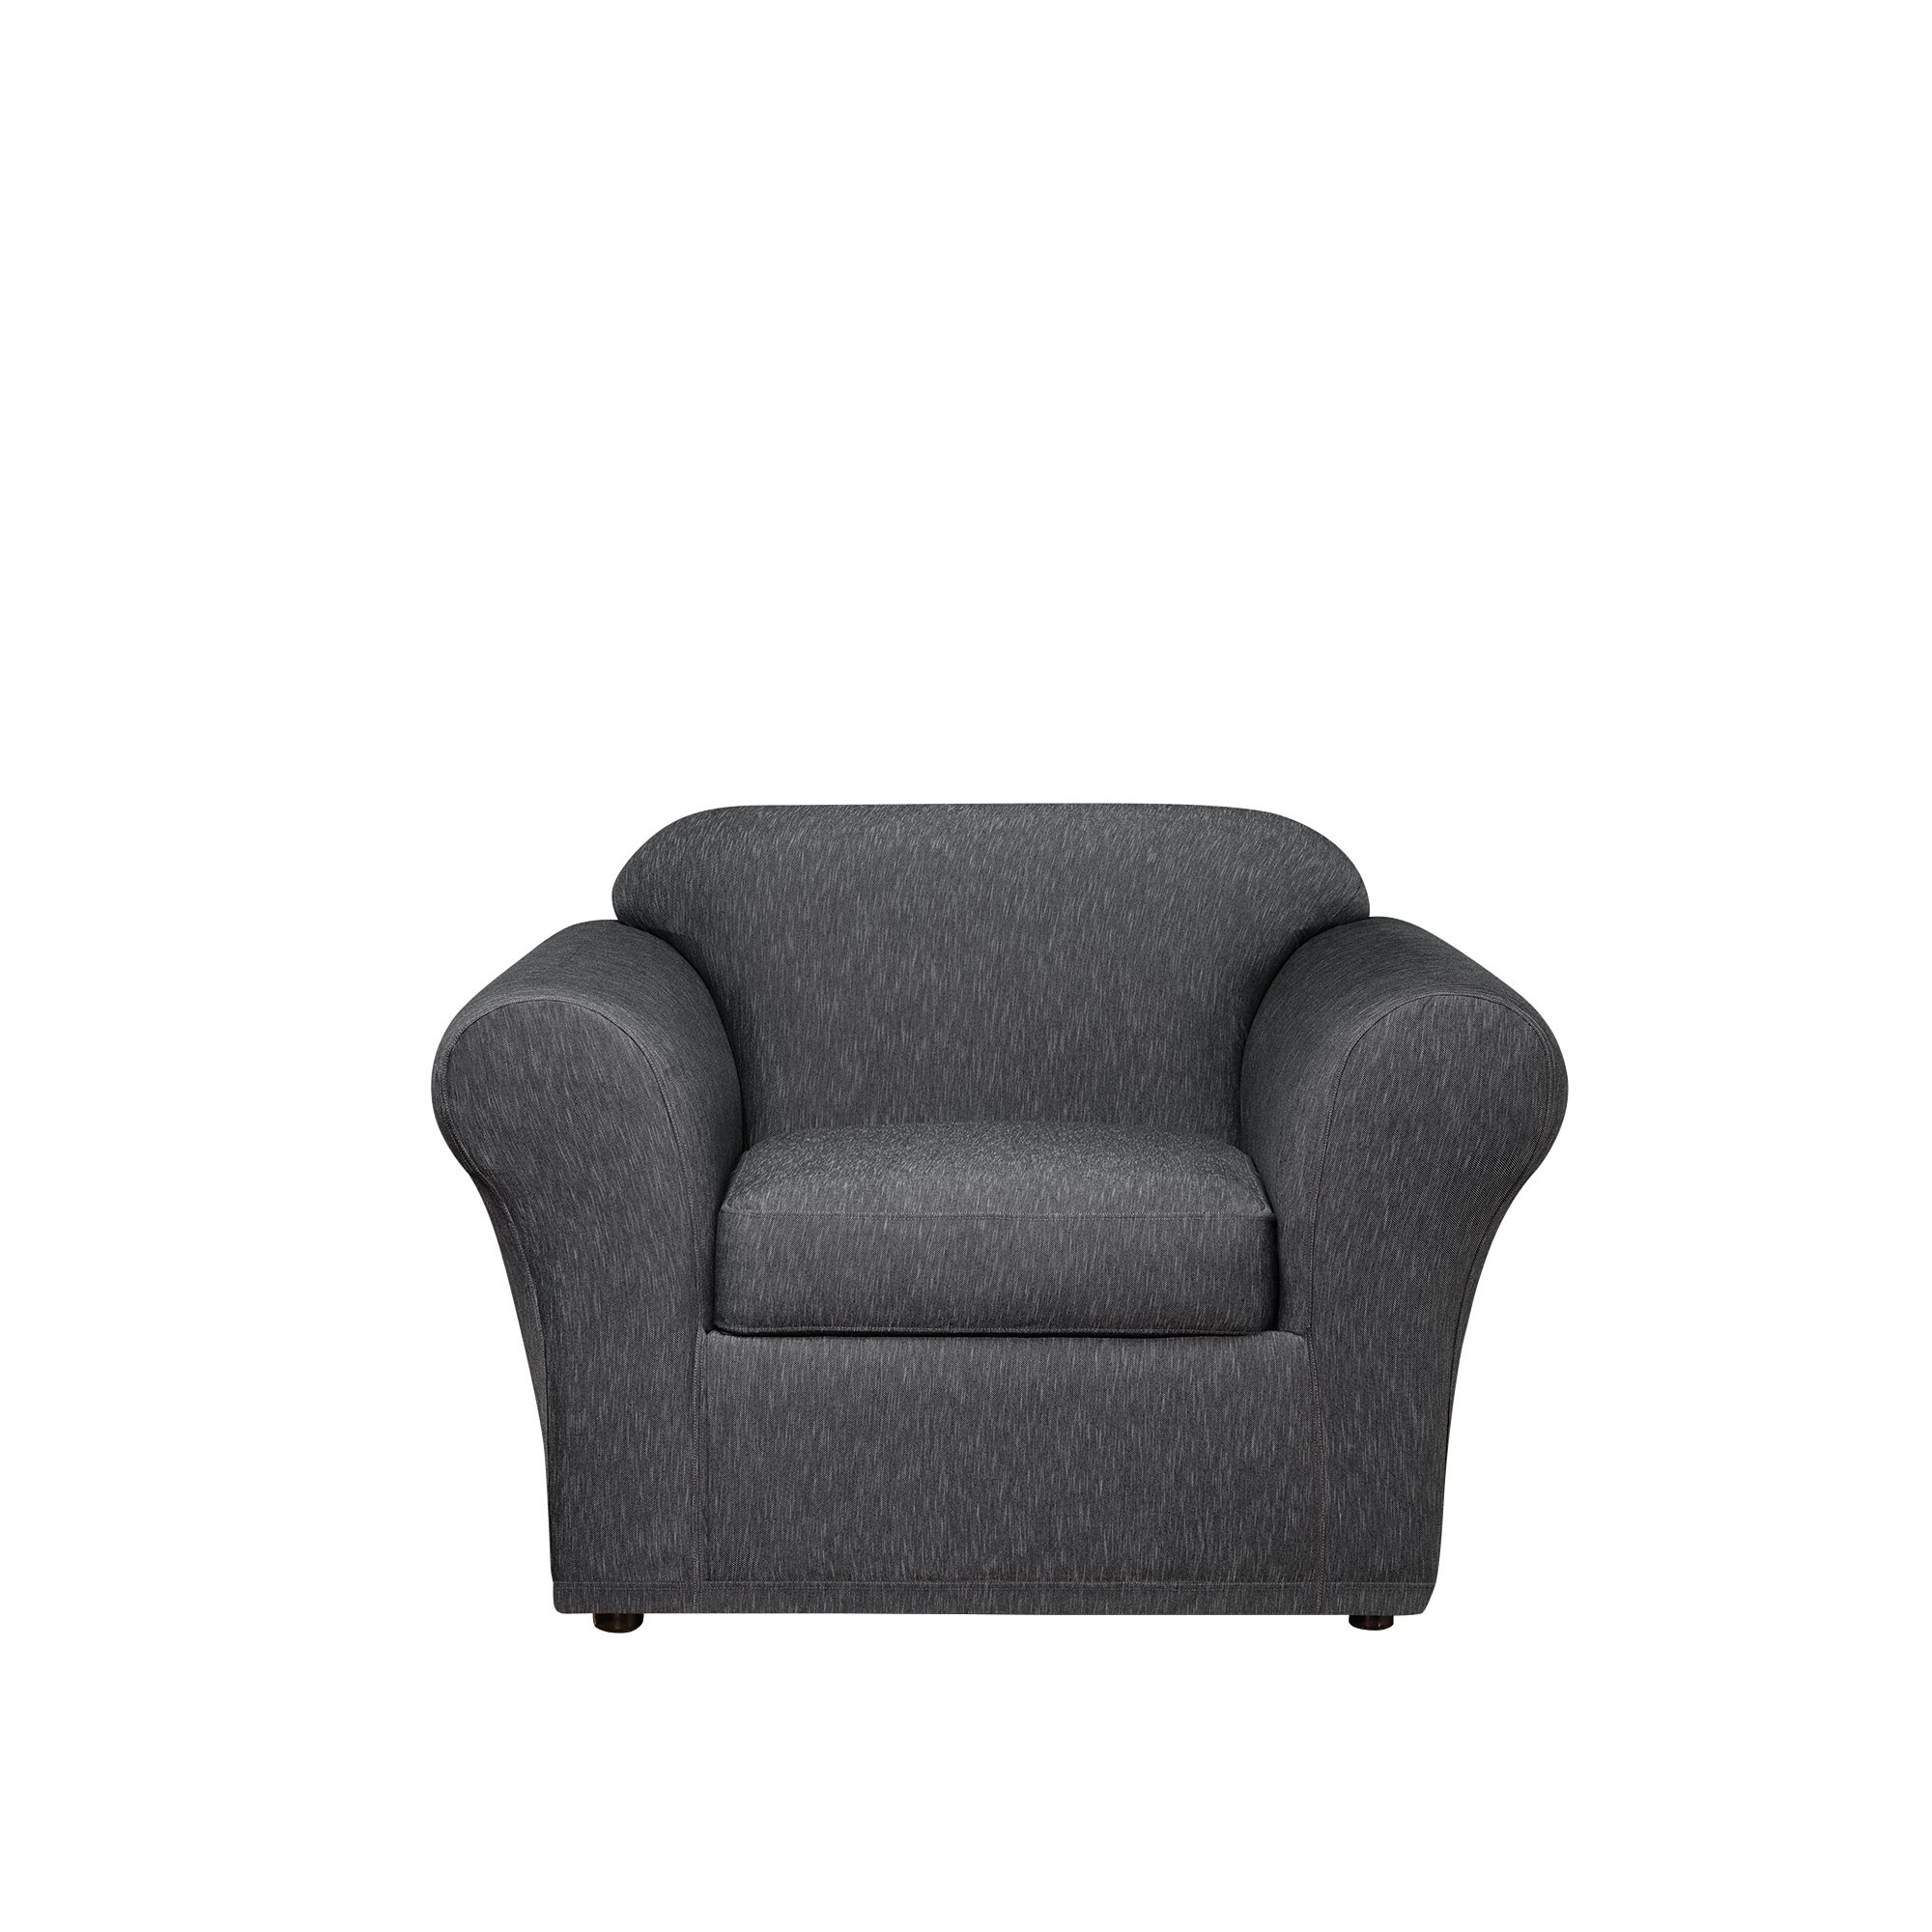 Sure Fit Stretch Denim One Piece Slipcover, Chair, Black